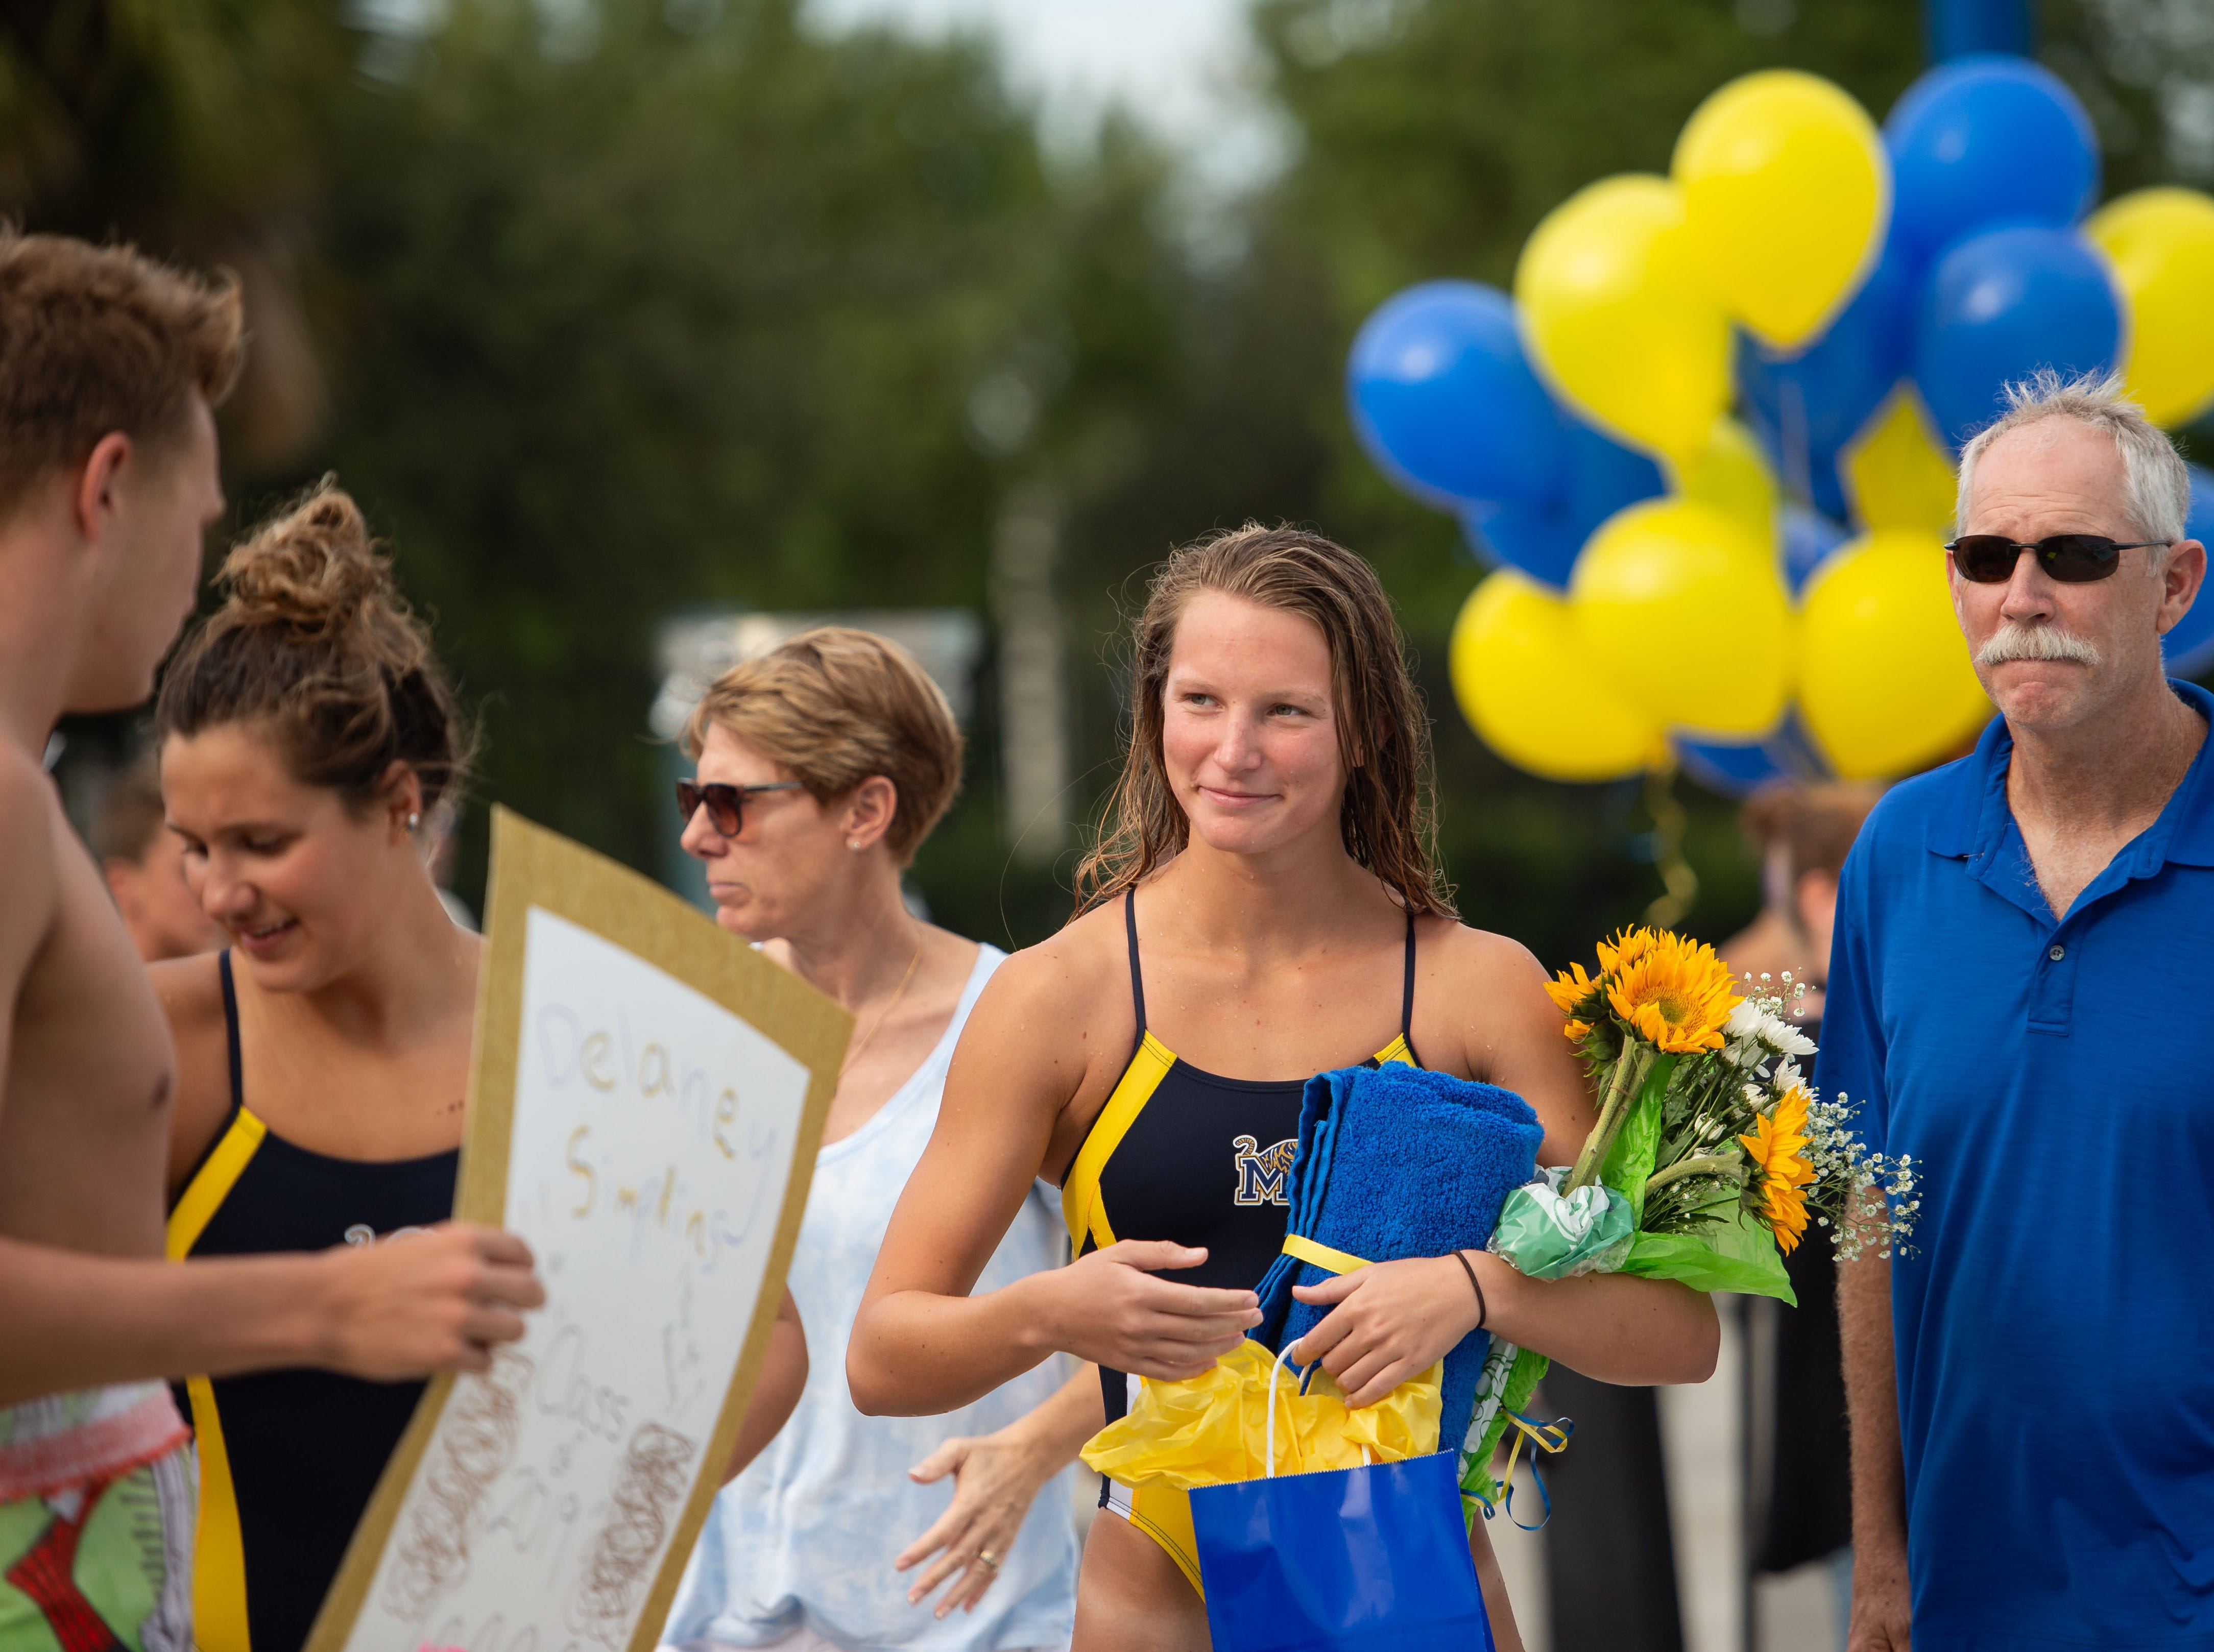 Martin County's Delaney Simpkins is honored during senior night as schools compete at the Martin County Championships high school swim and dive meet Thursday, Oct. 11, 2018, at Sailfish Splash in Stuart.